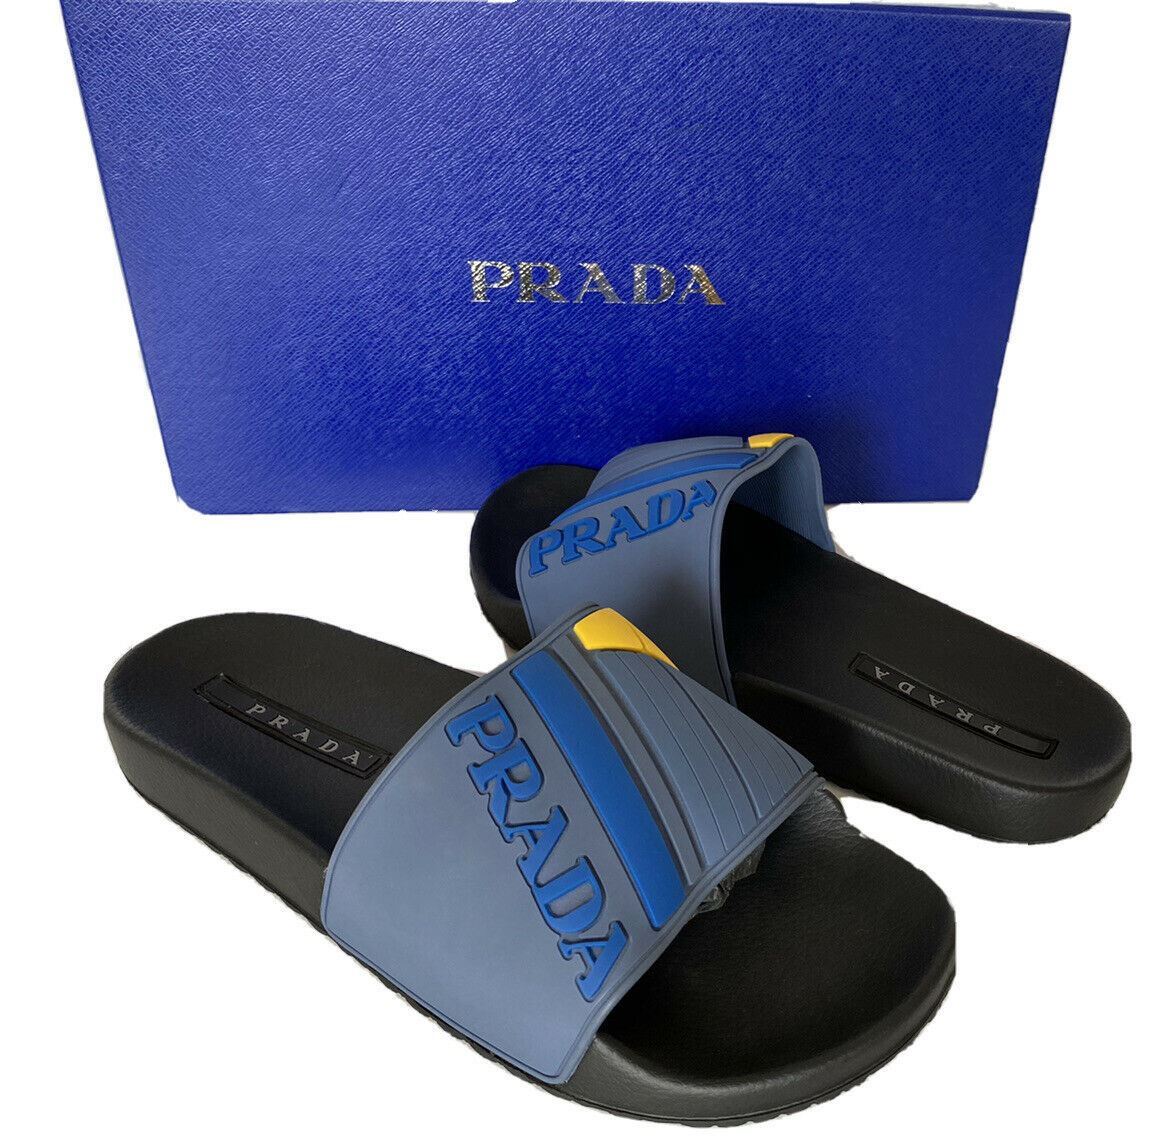 NIB Prada Mens Rubber Sandals Neon Blue/Yellow 12 US 4X3204 Made in Italy